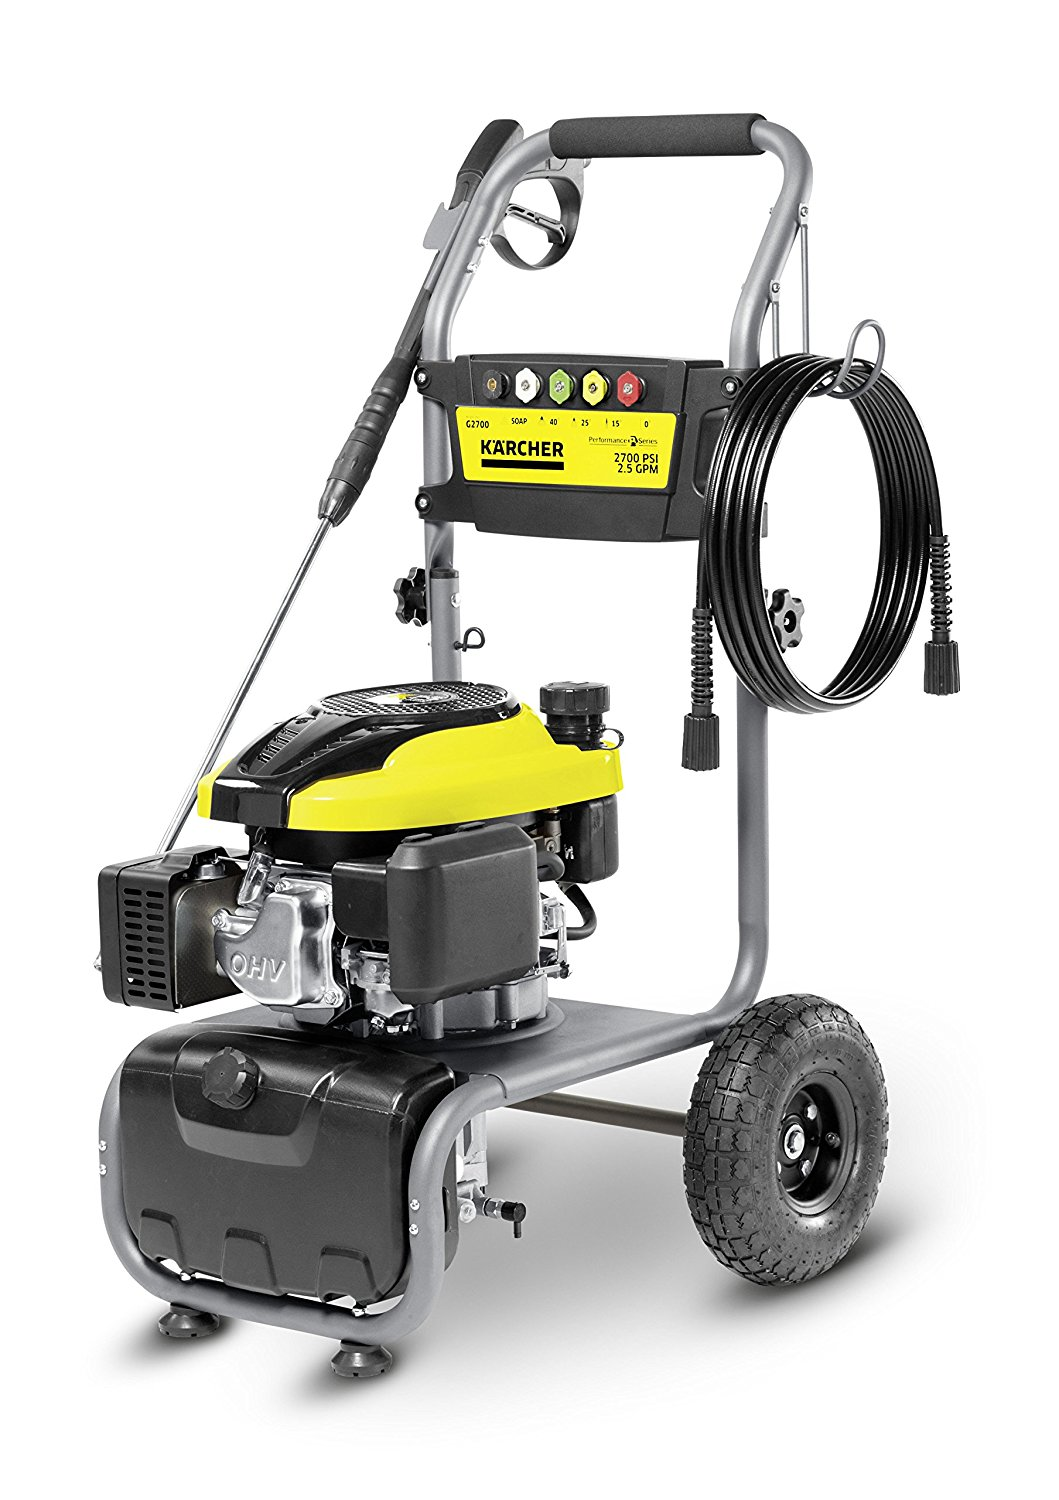 karcher_power_washer